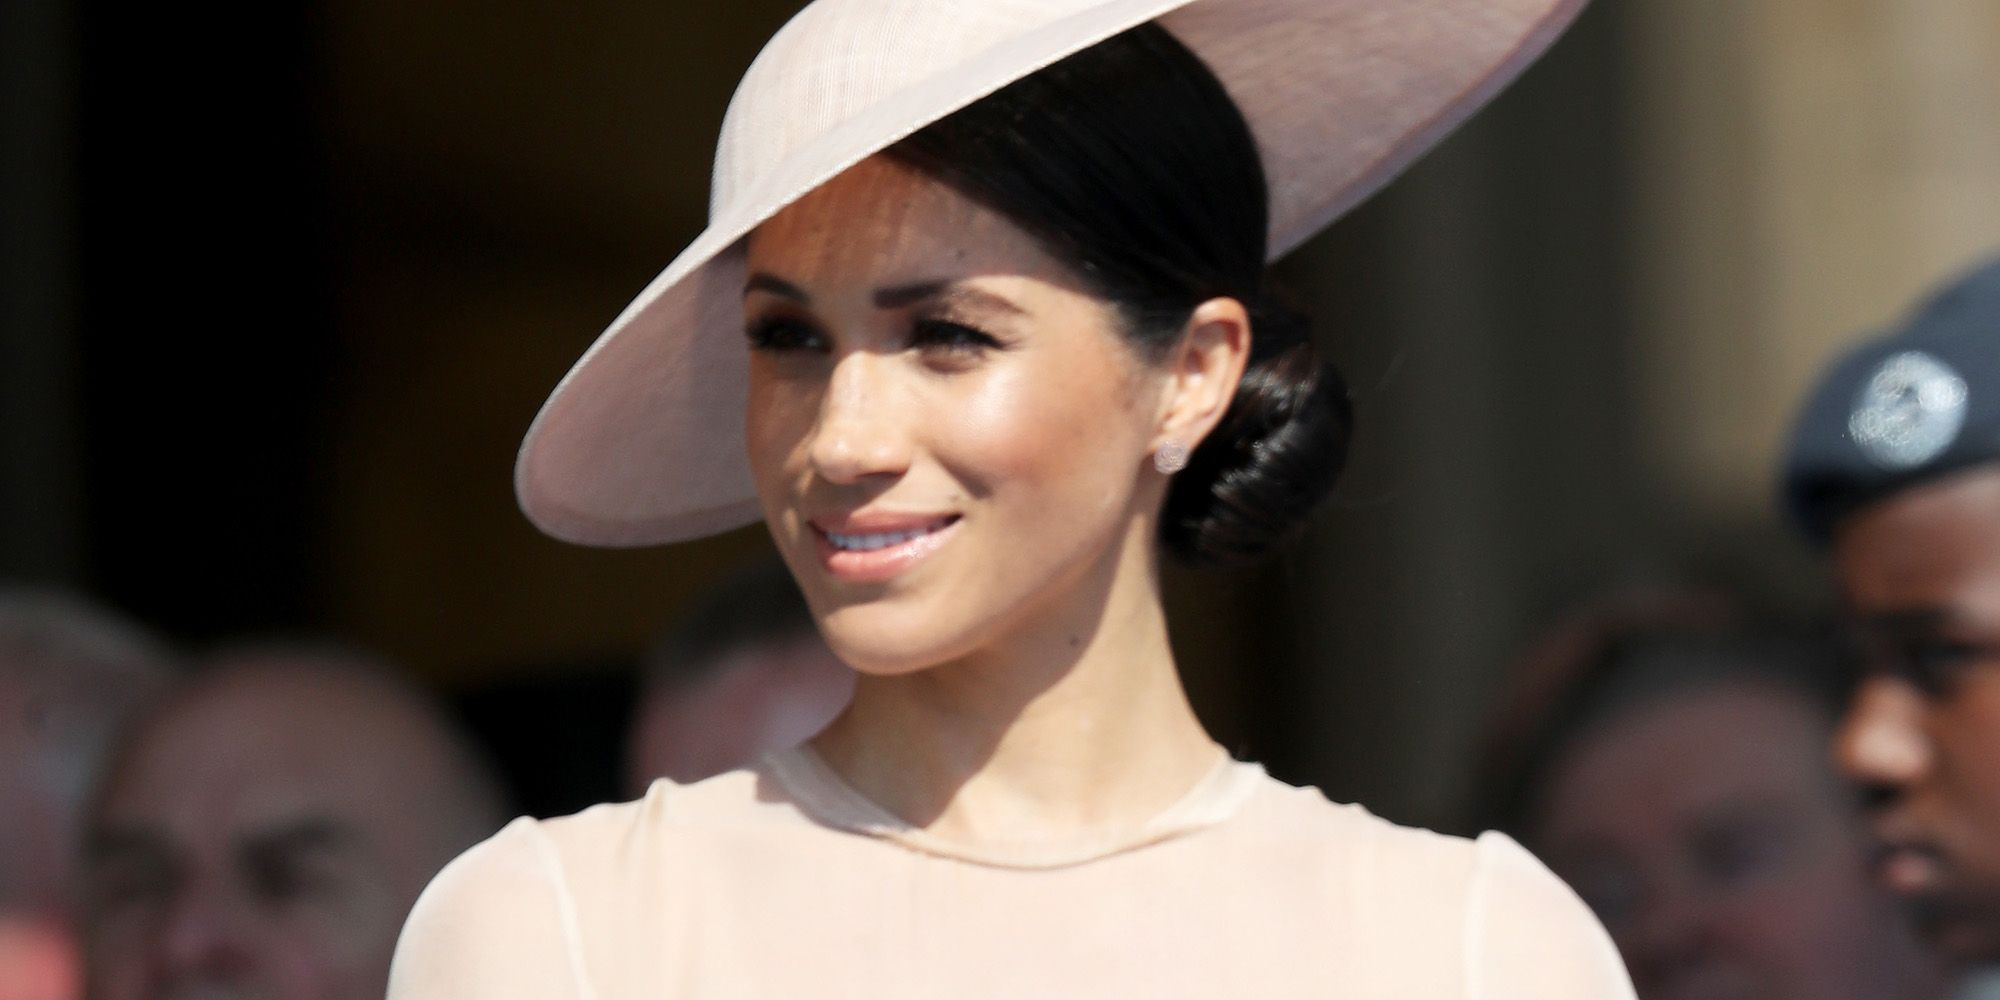 Meghan Markle's royal training will include preparingfor hostage situations foto